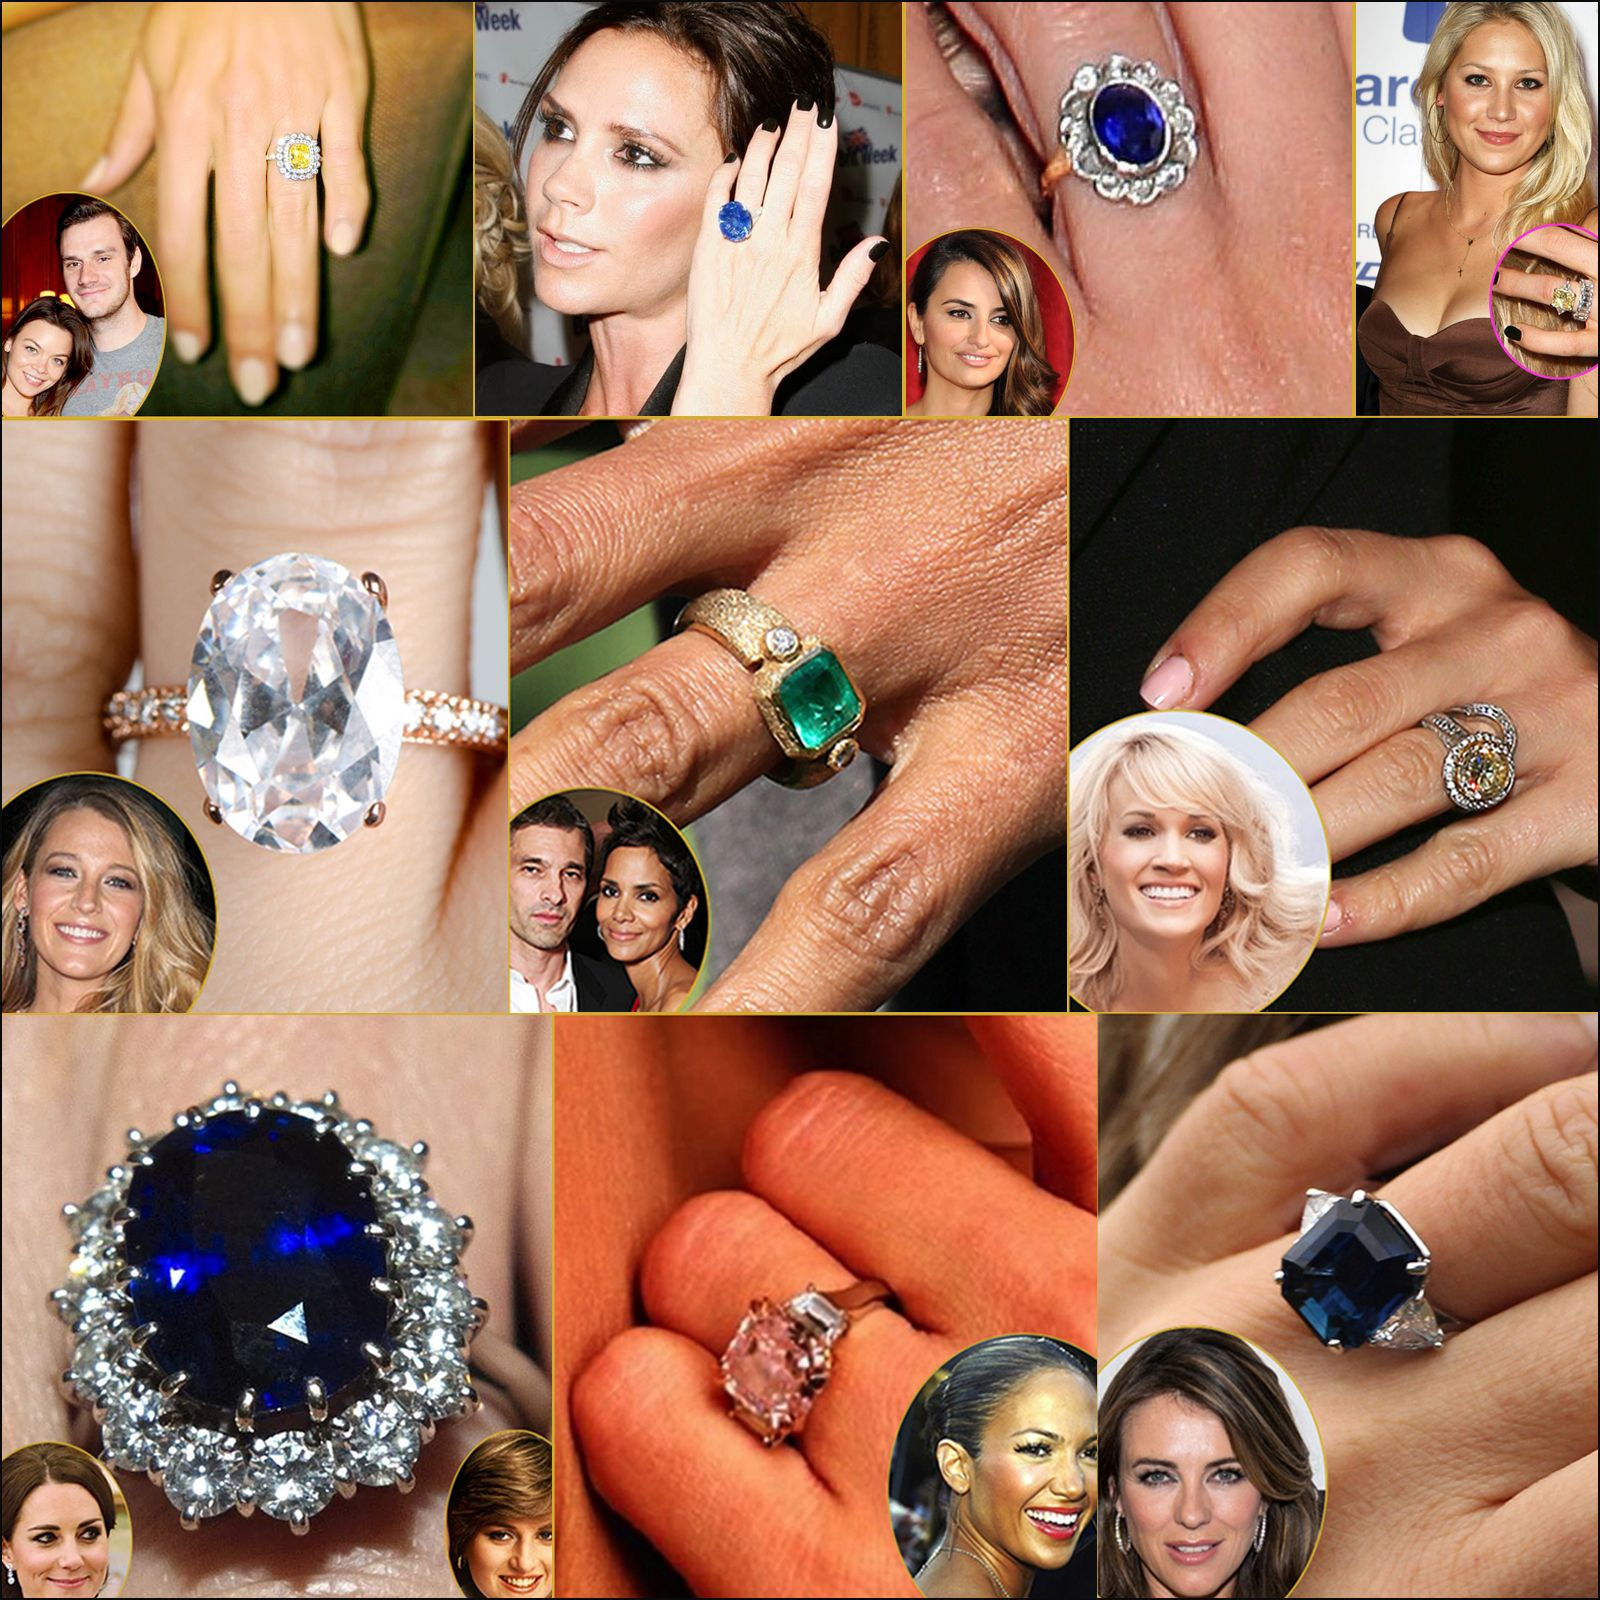 vogue middleton rings best the of kim kardashian famous kate time article all engagement wedding celebrity